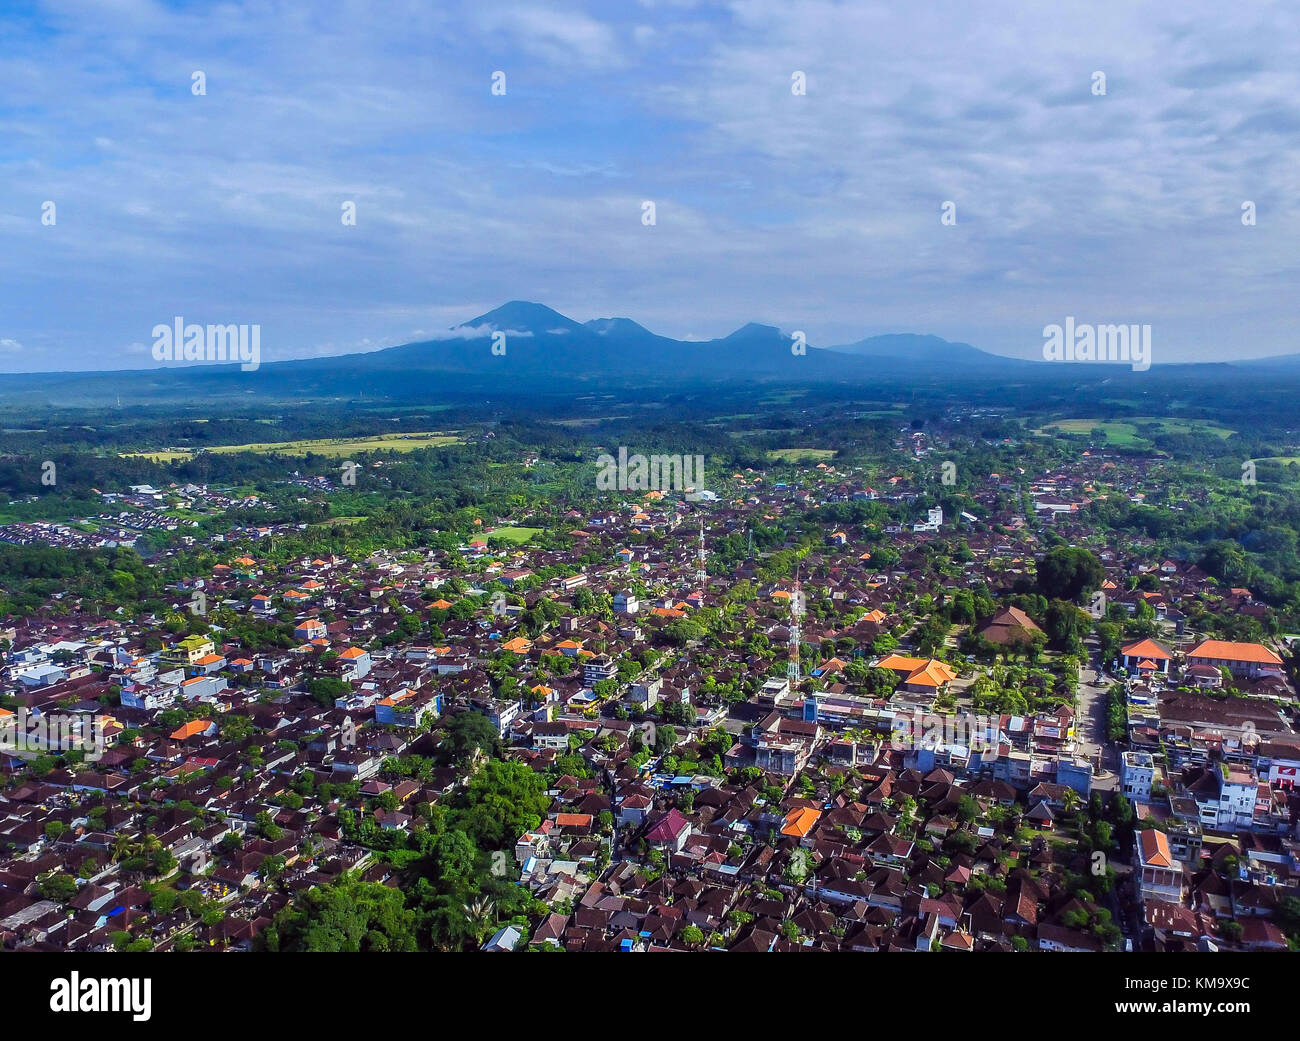 The city of Tabanan with mount Batukaru in the background - Stock Image